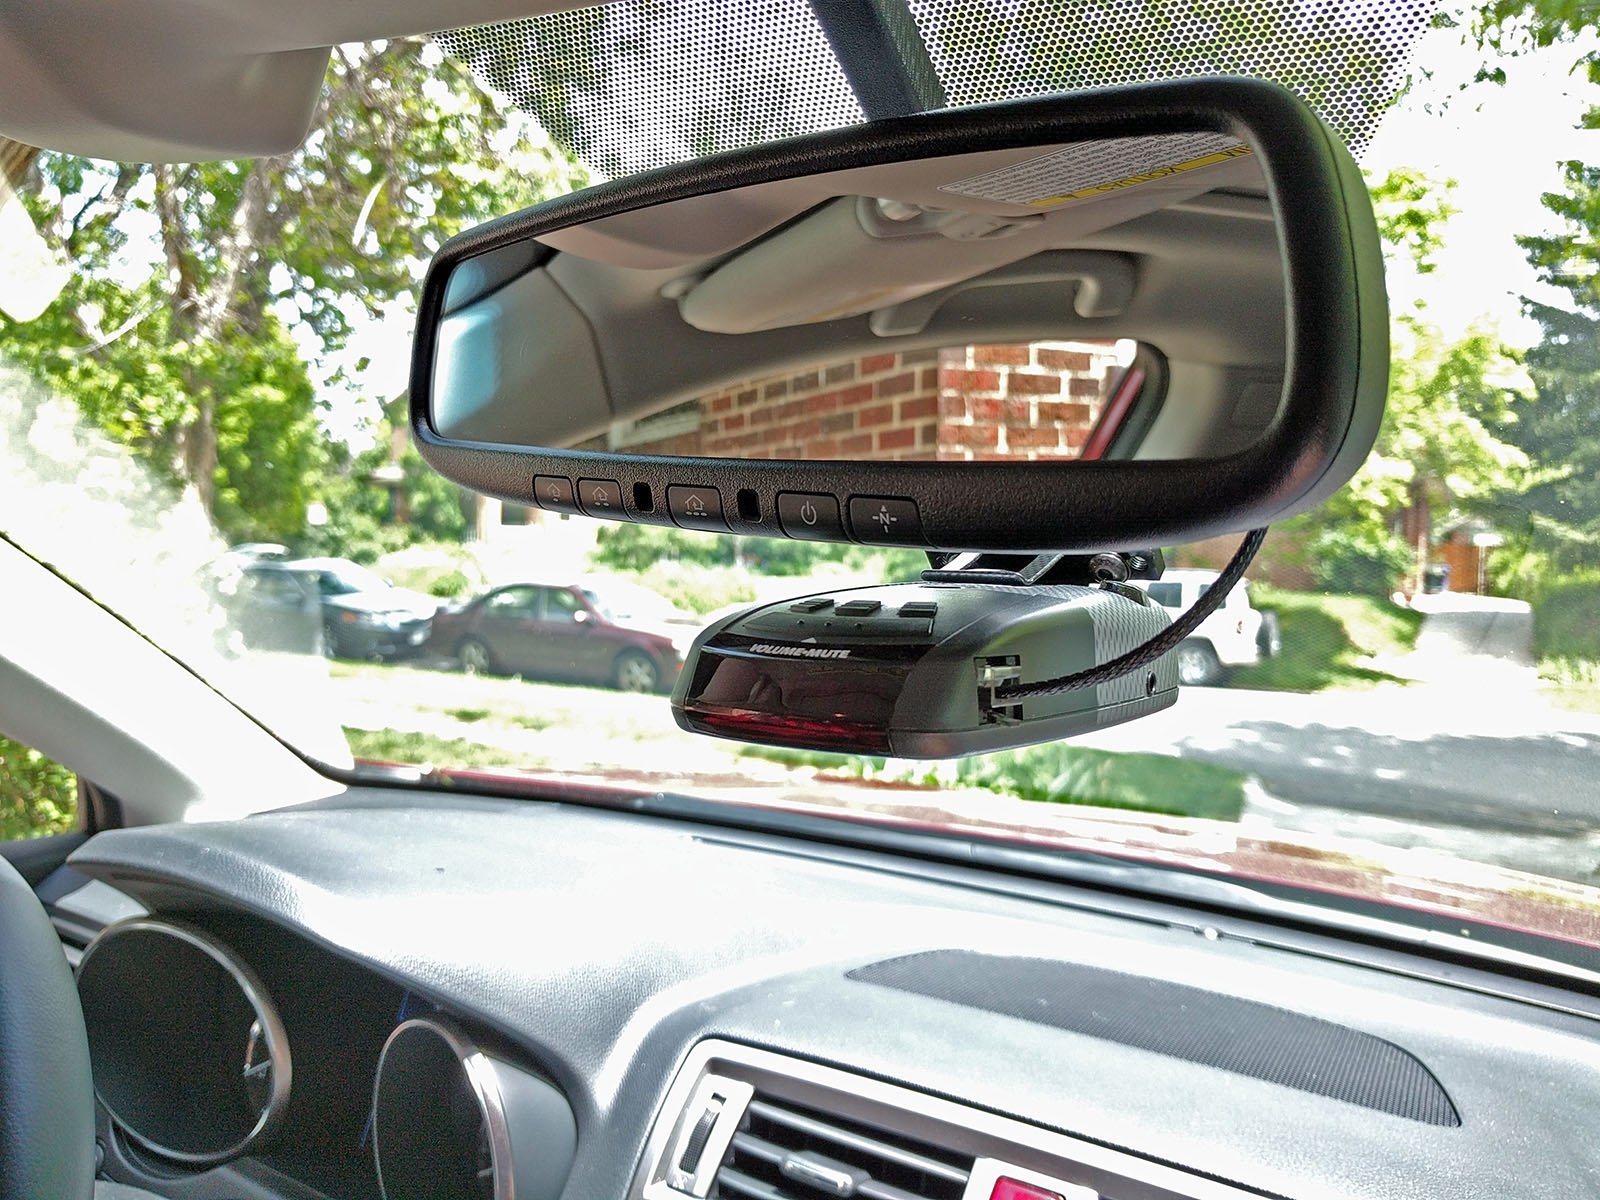 Mounting Radar Detector On Rear View Mirror With Power Tap